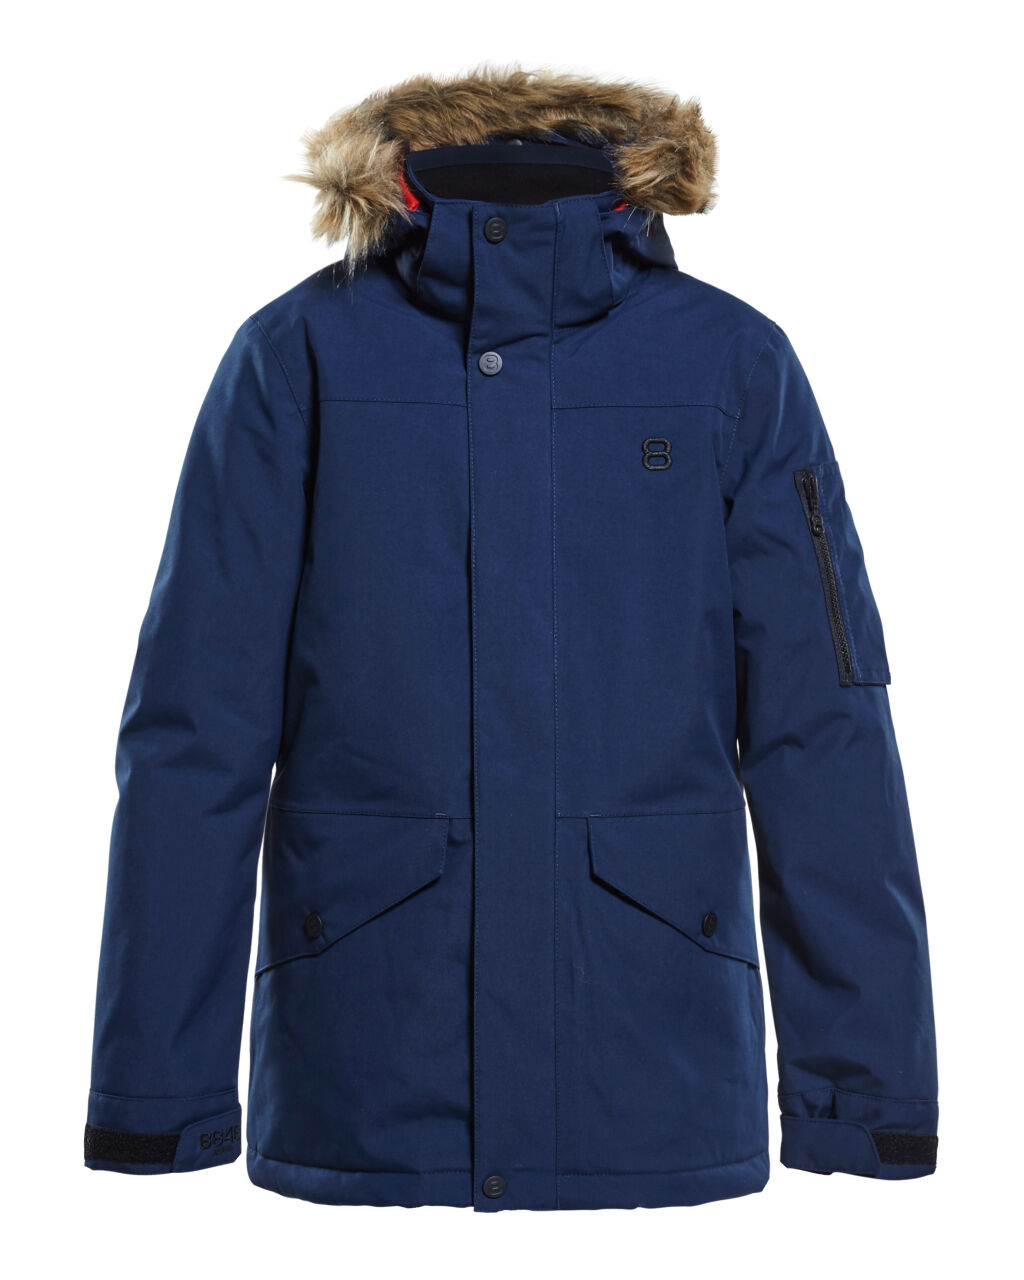 8848 Altitude Eward Jacket Jr